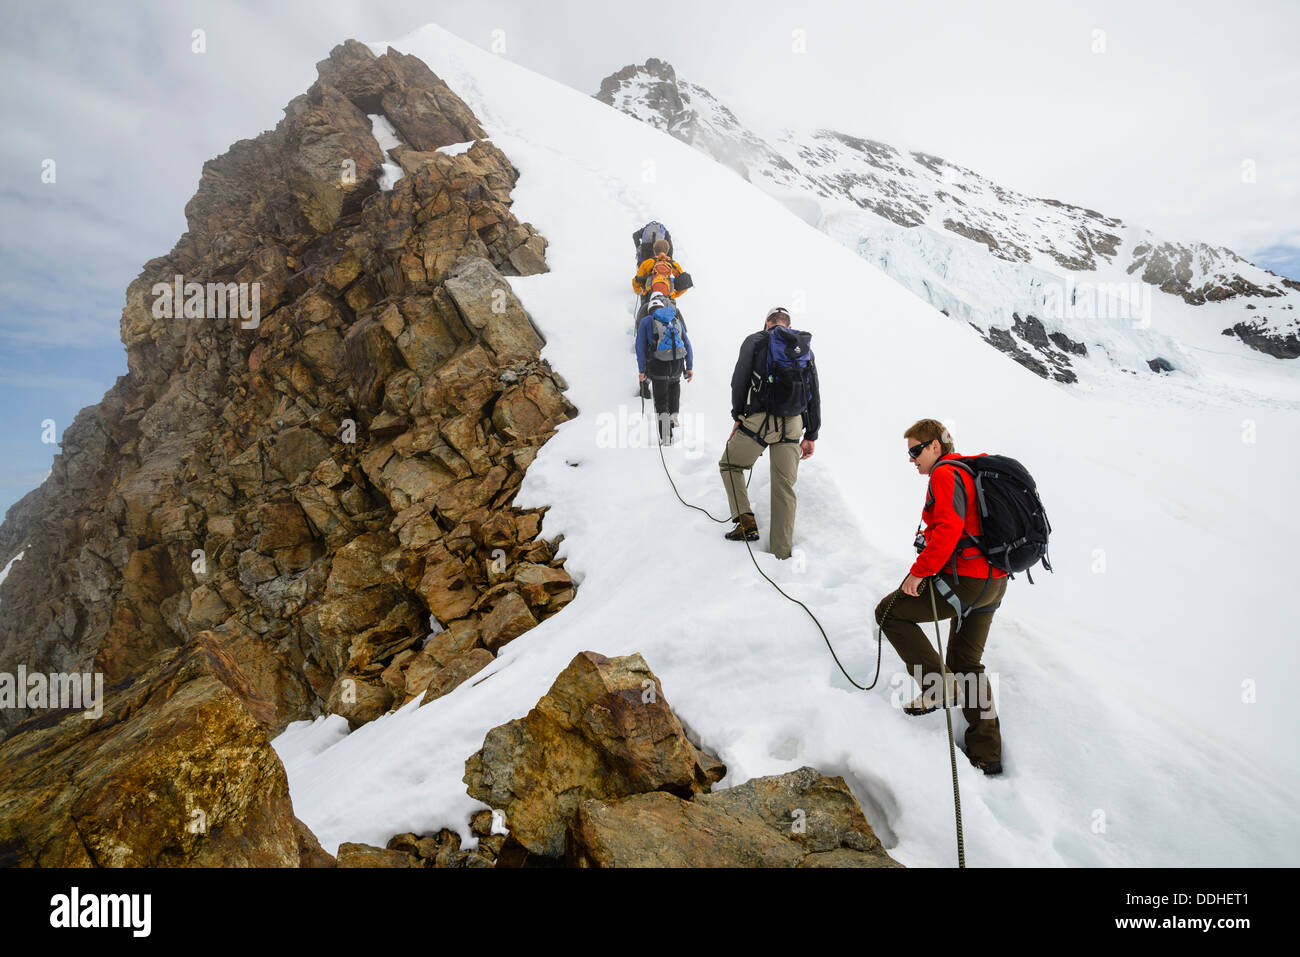 Climbers on the ridge of the Jungfraujoch, near Grindelwald Switzerland, with the south-west ridge of the Monch behind - Stock Image